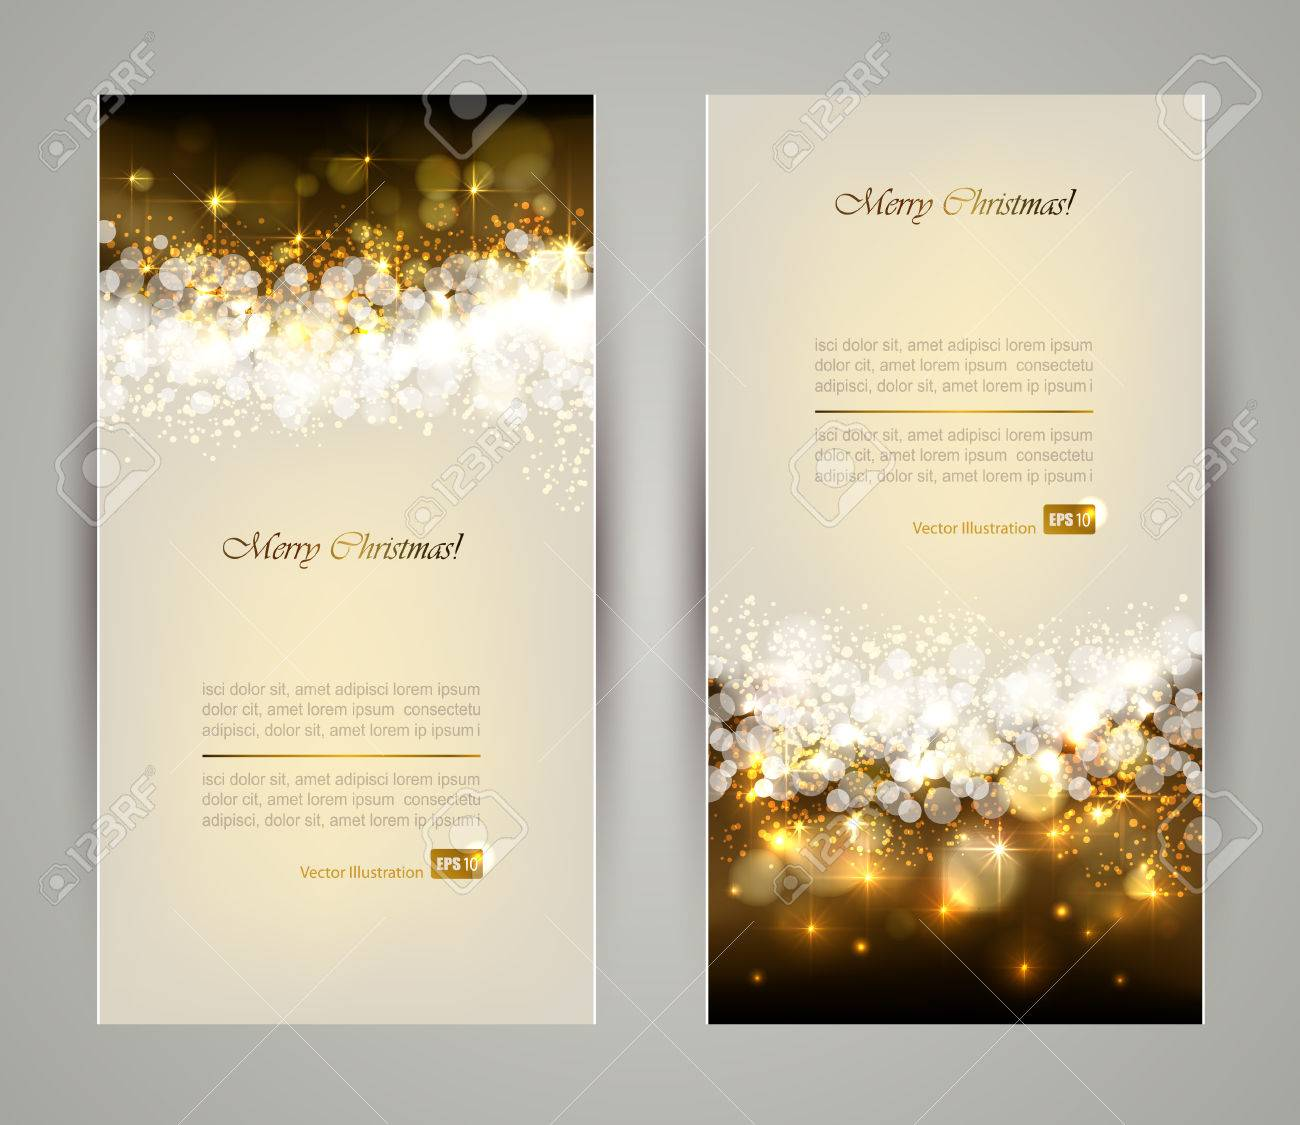 Two Elegant Christmas Greeting Cards Royalty Free Cliparts Vectors